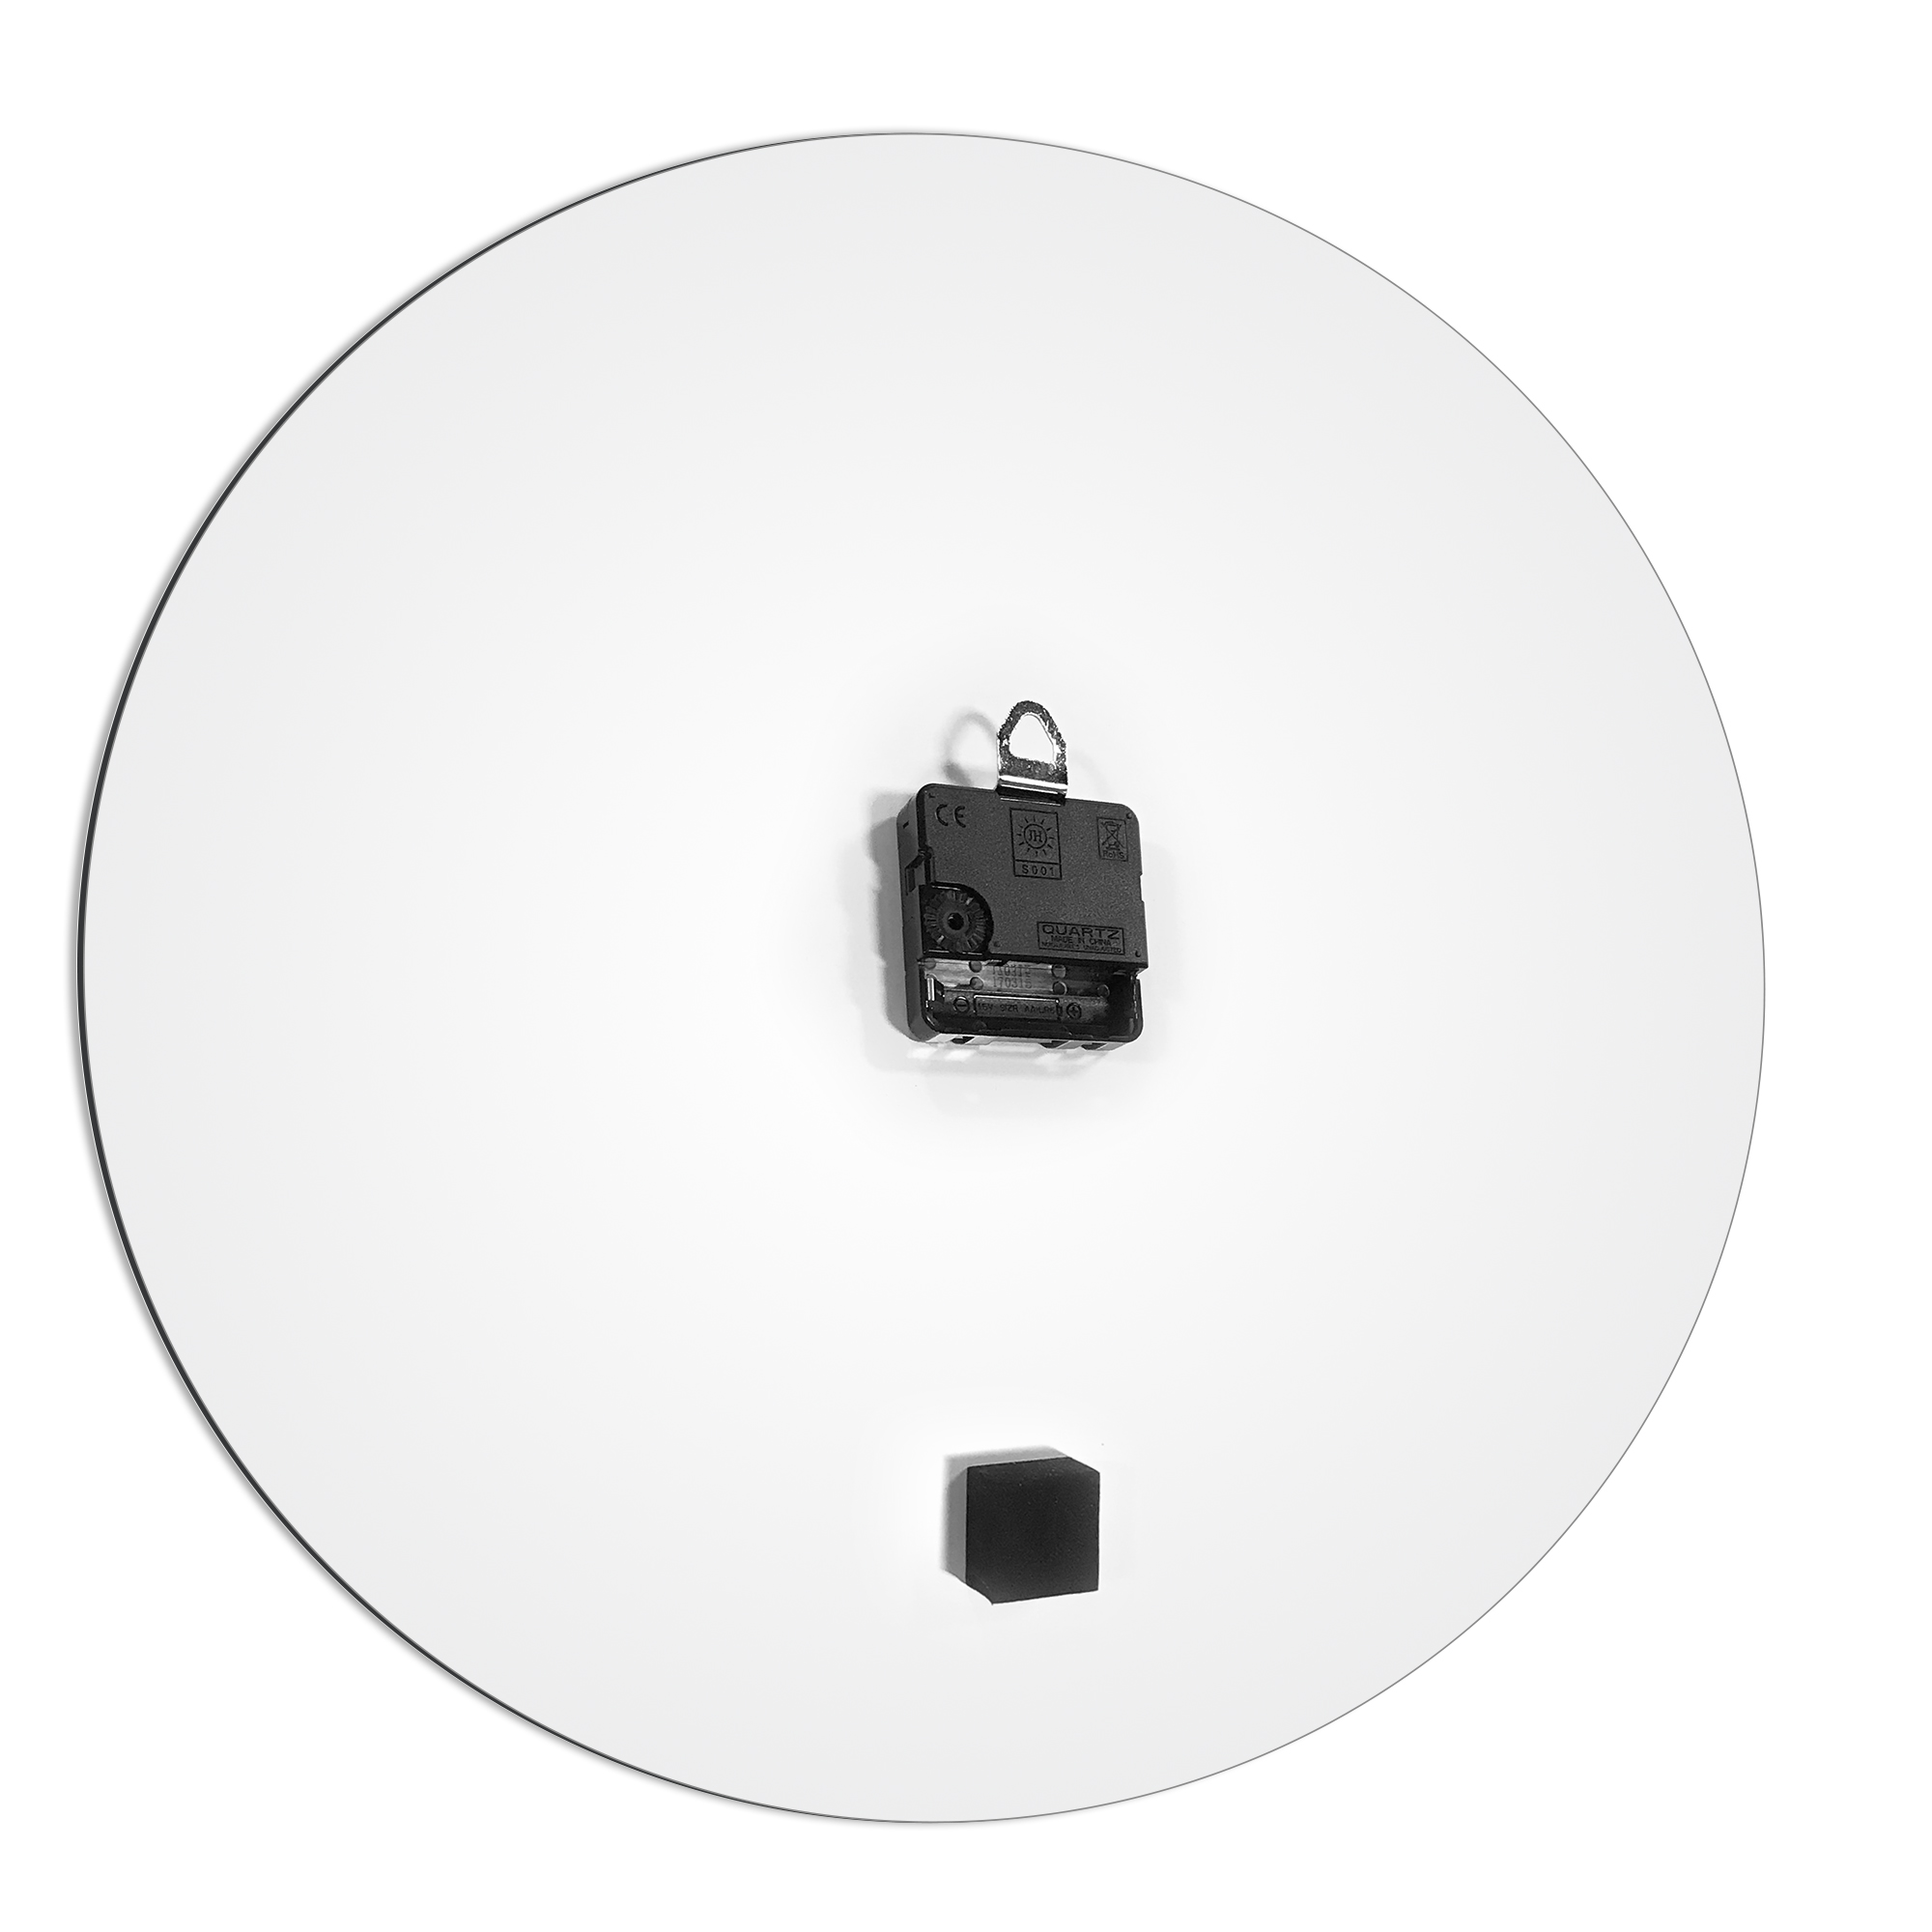 Blueout White Circle Clock Large by Adam Schwoeppe Contemporary Clock on Aluminum Polymetal - Alternate View 3